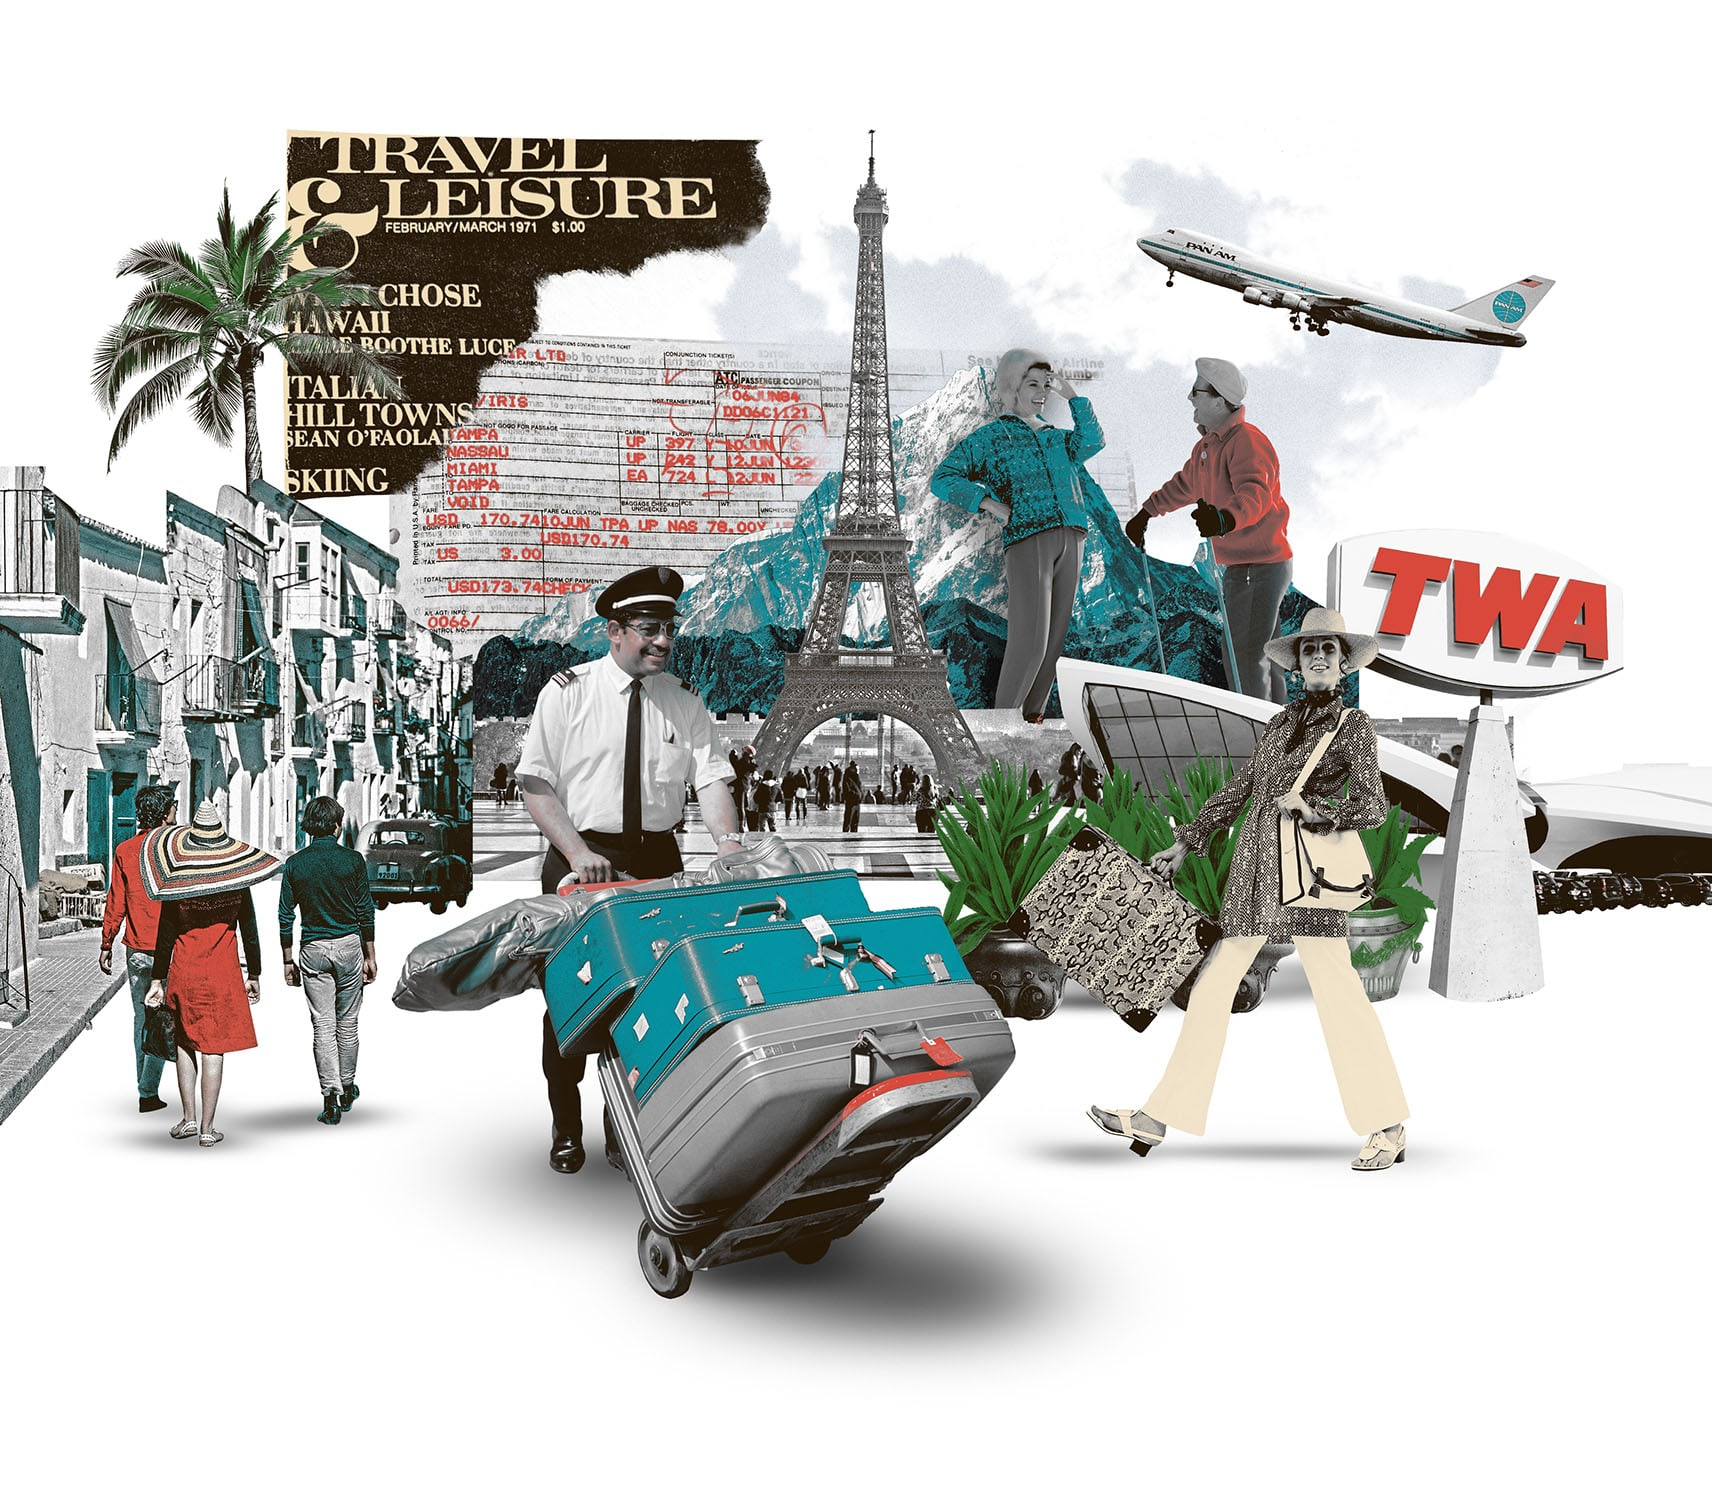 Max-o-matic: Travel&Leisure: Post pandemic tourism